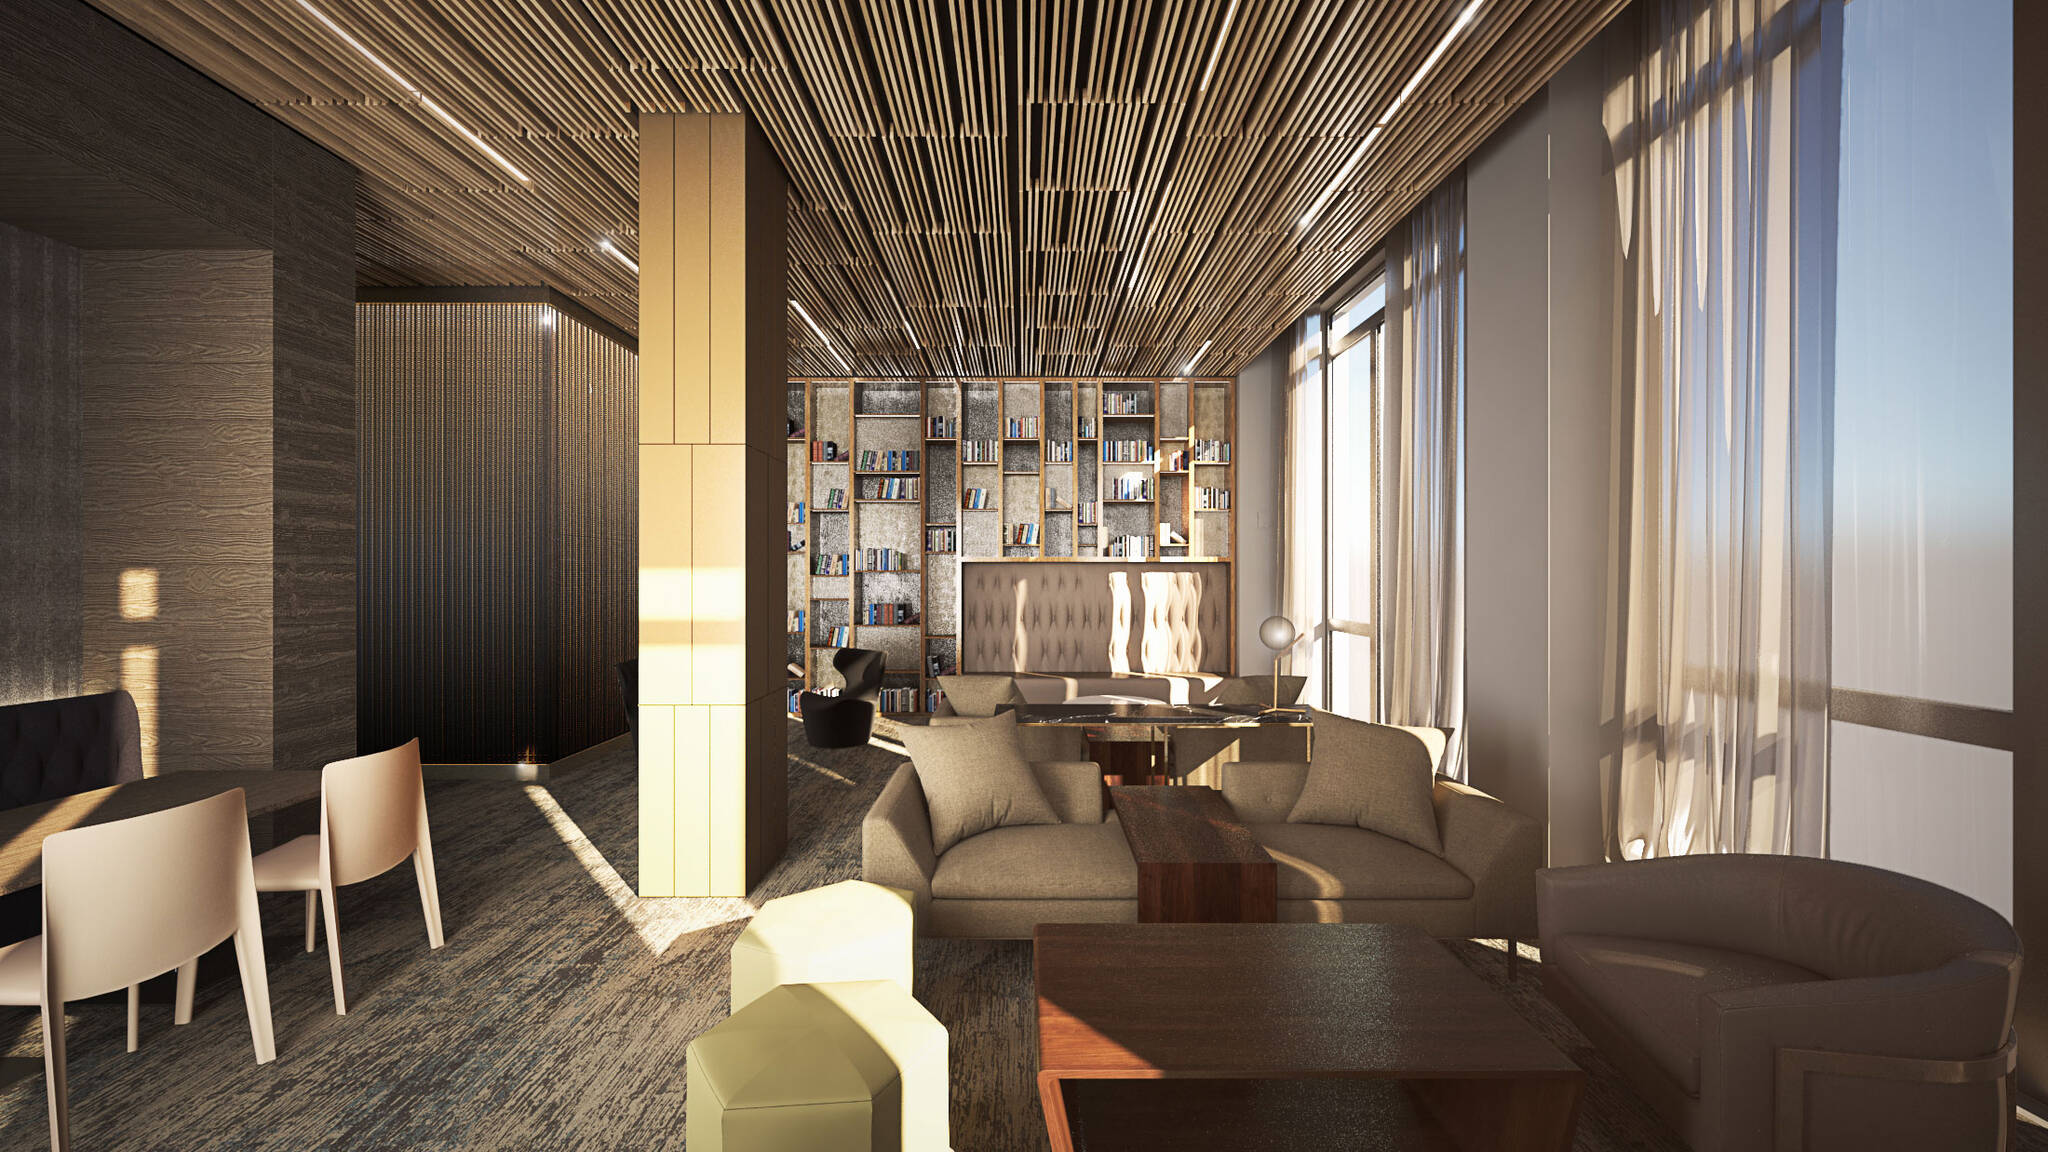 Library of the Hudson Yards Autograph Hotel project by Marriott, a modular hotel tower located at 432 West 31st Street in Hudson Yards, New York City designed by the architecture studio Danny Forster & Architecture